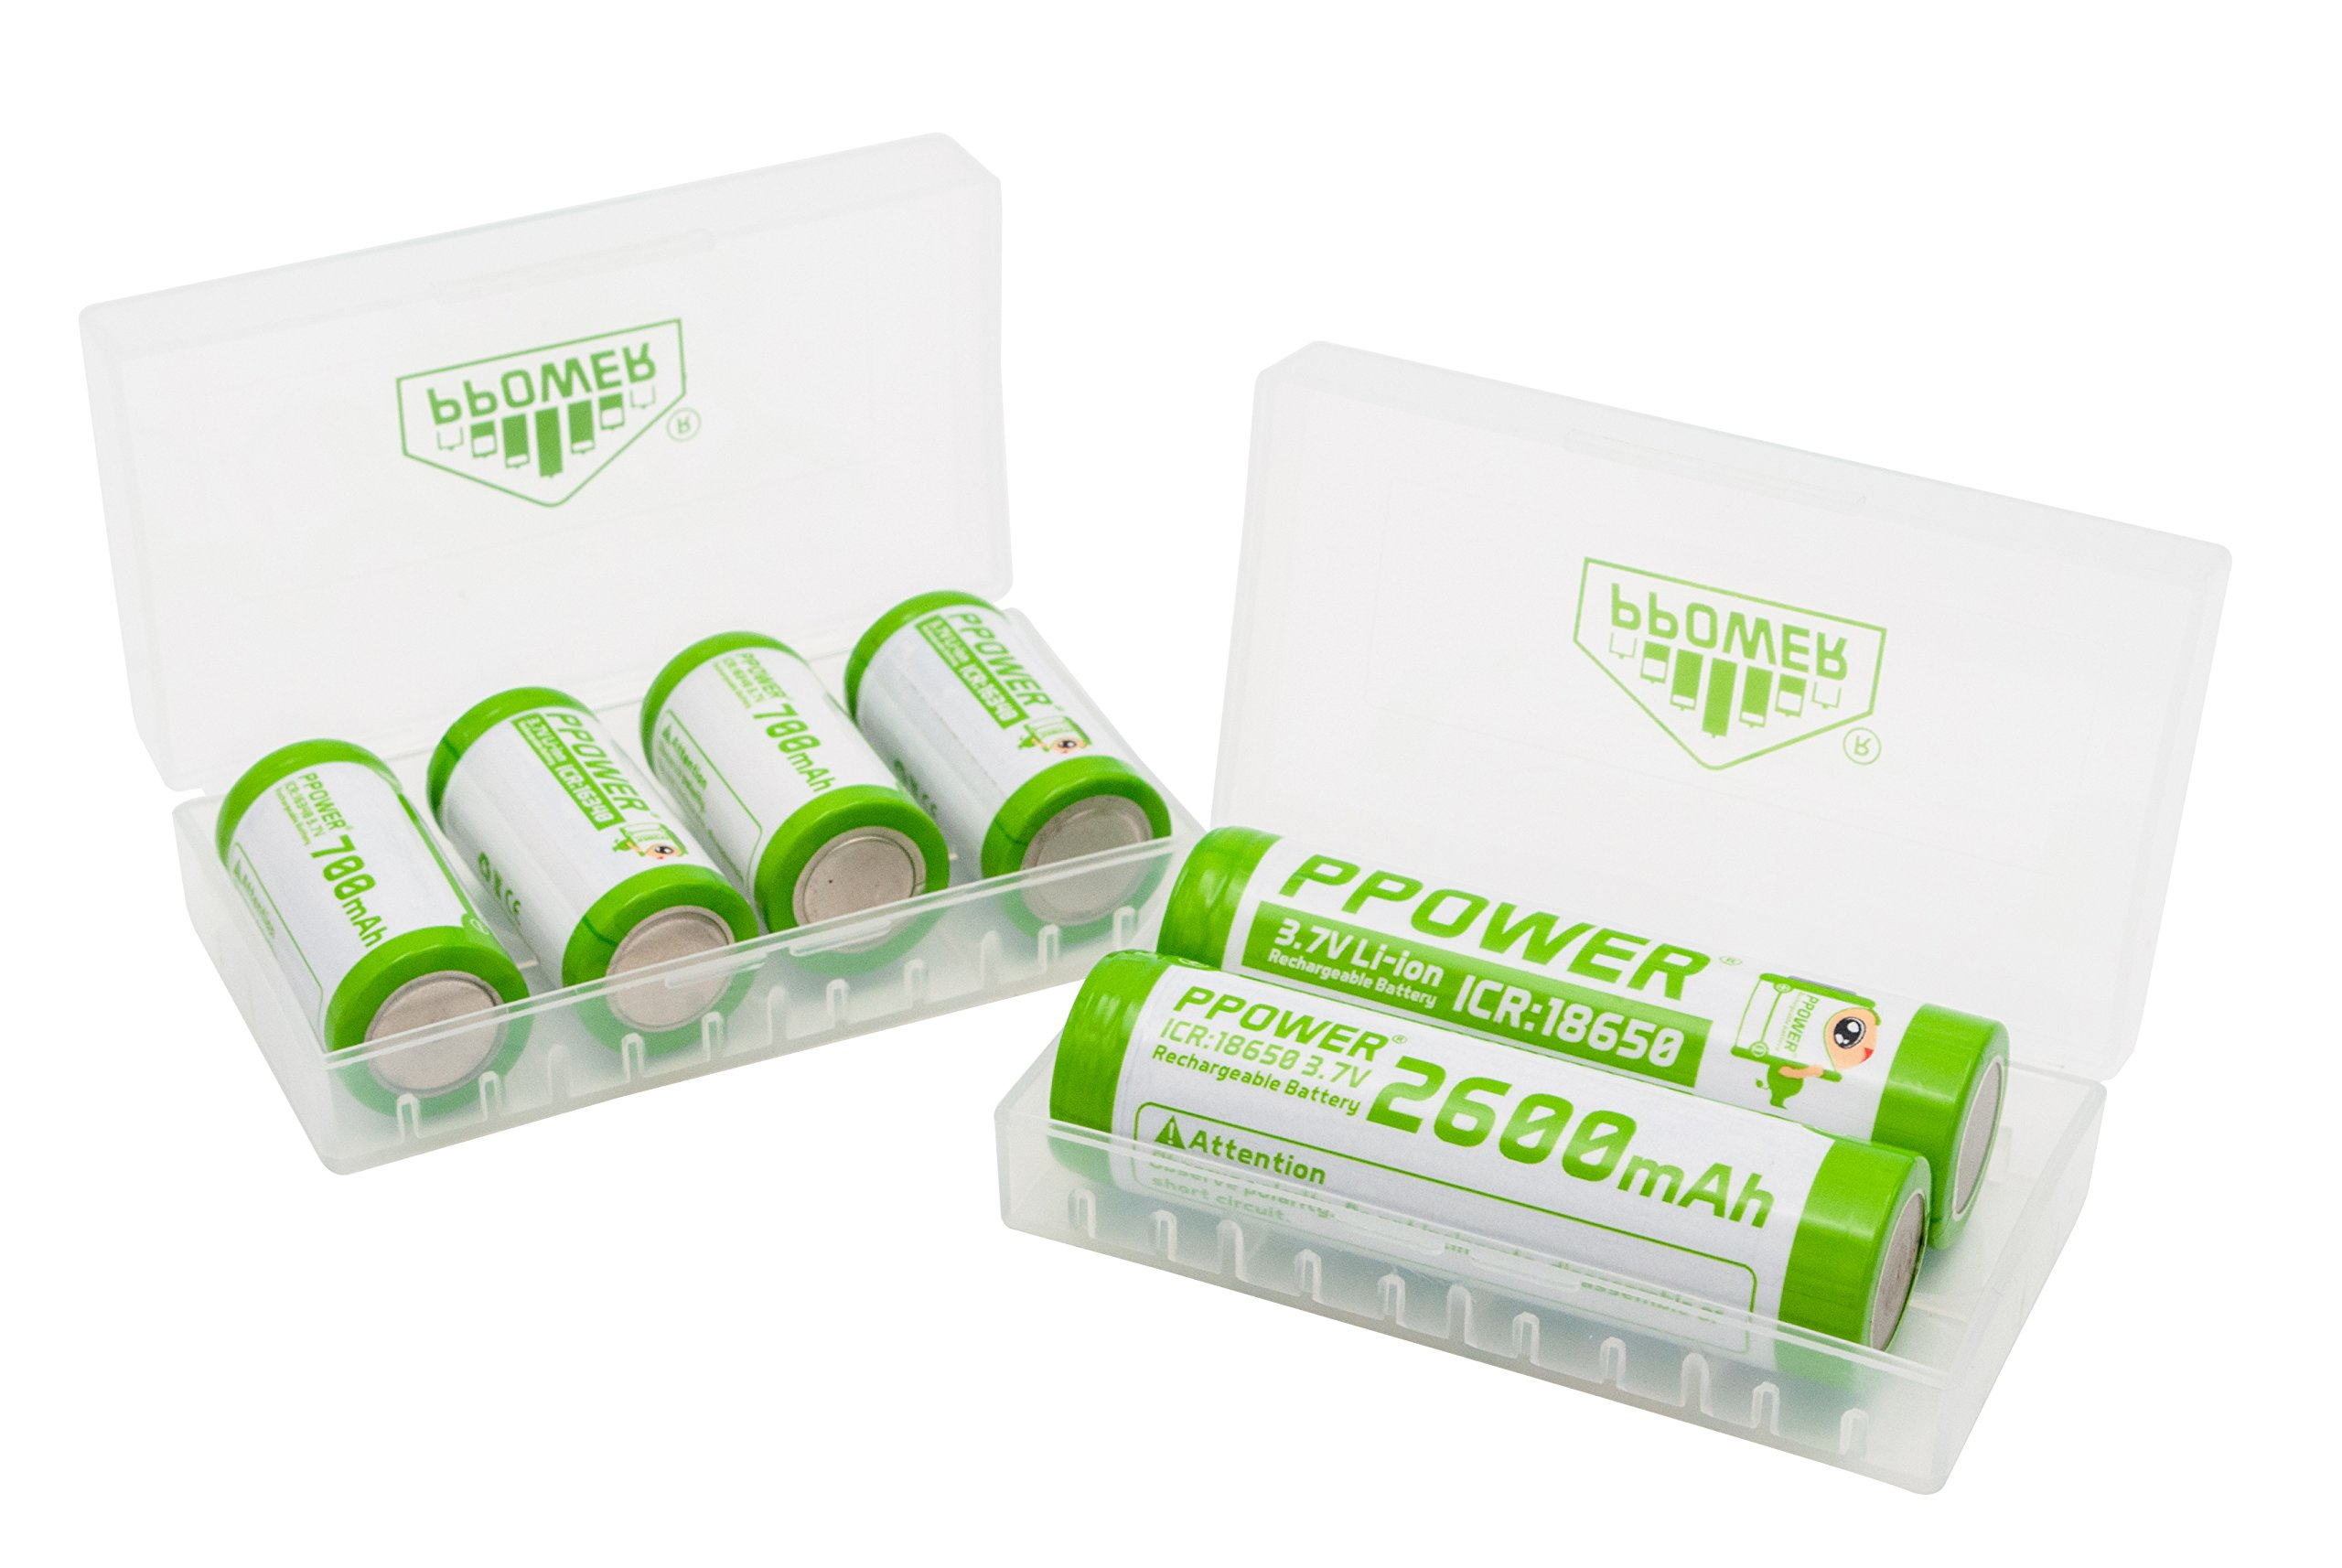 2X Ppower battery box, storage box, for 4x 18650, 8x 16340, 17500, 17650 batteries, battery case (batteries are not included) P-Power